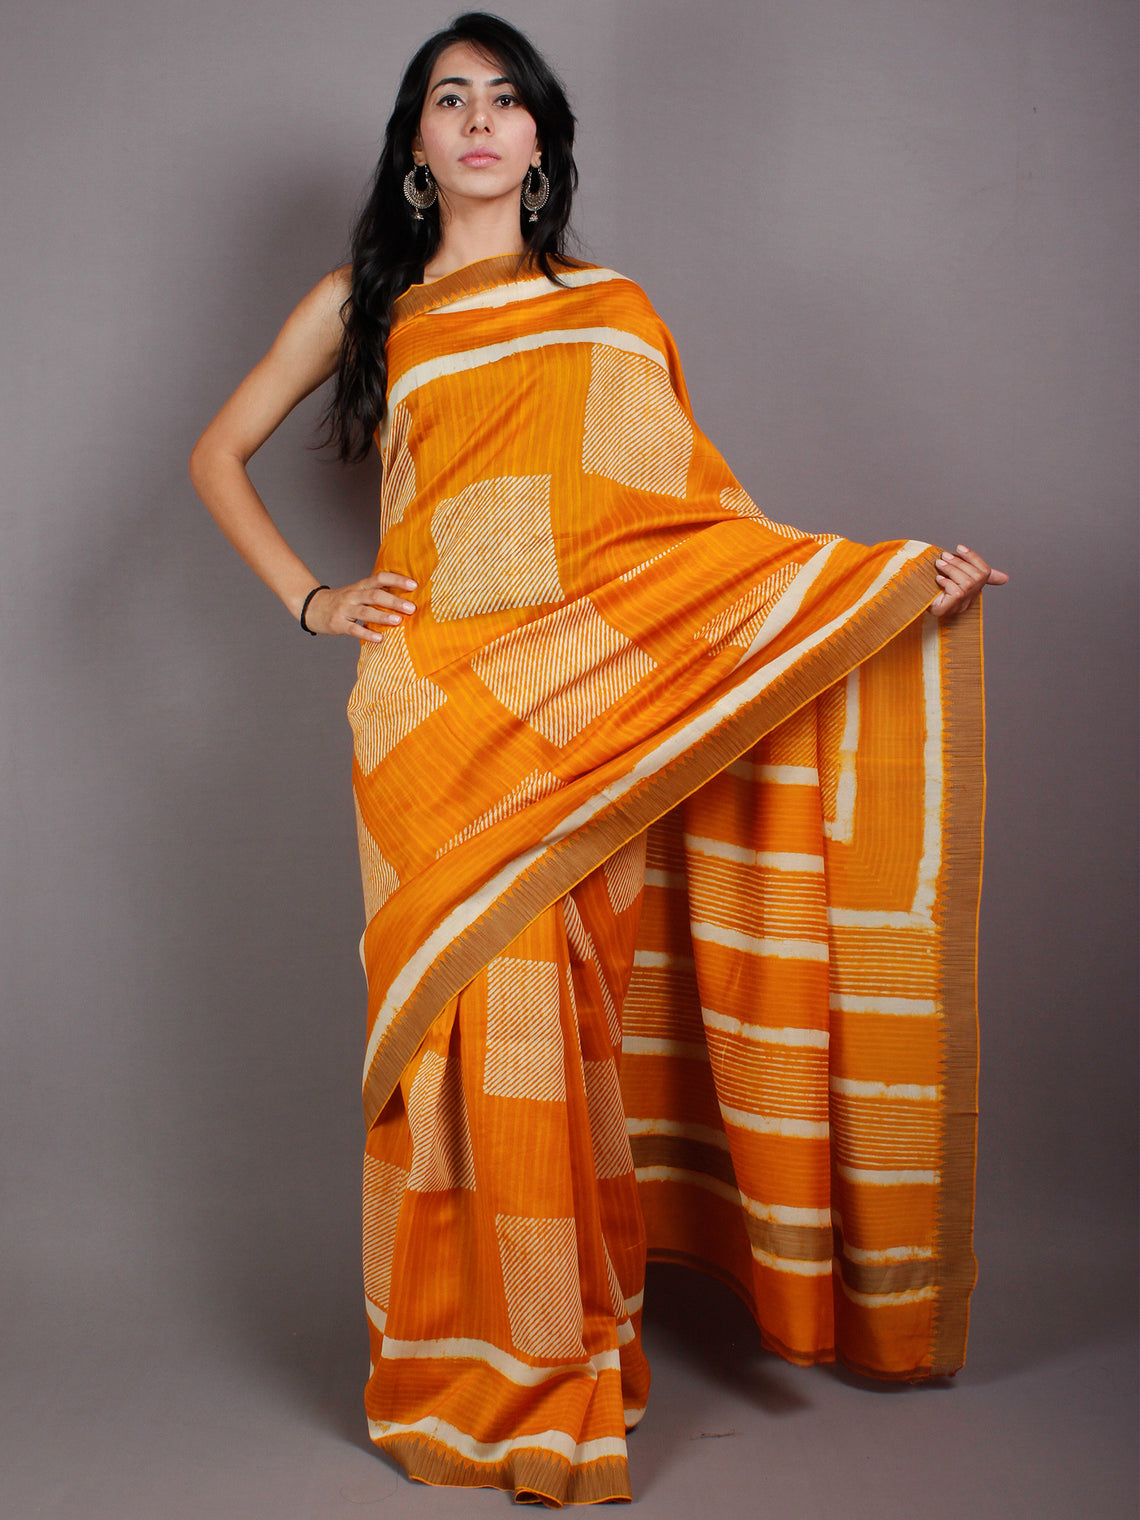 Yellow Beige White Hand Block Printed in Natural Vegetable Colors Chanderi Saree With Geecha Border - S03170513